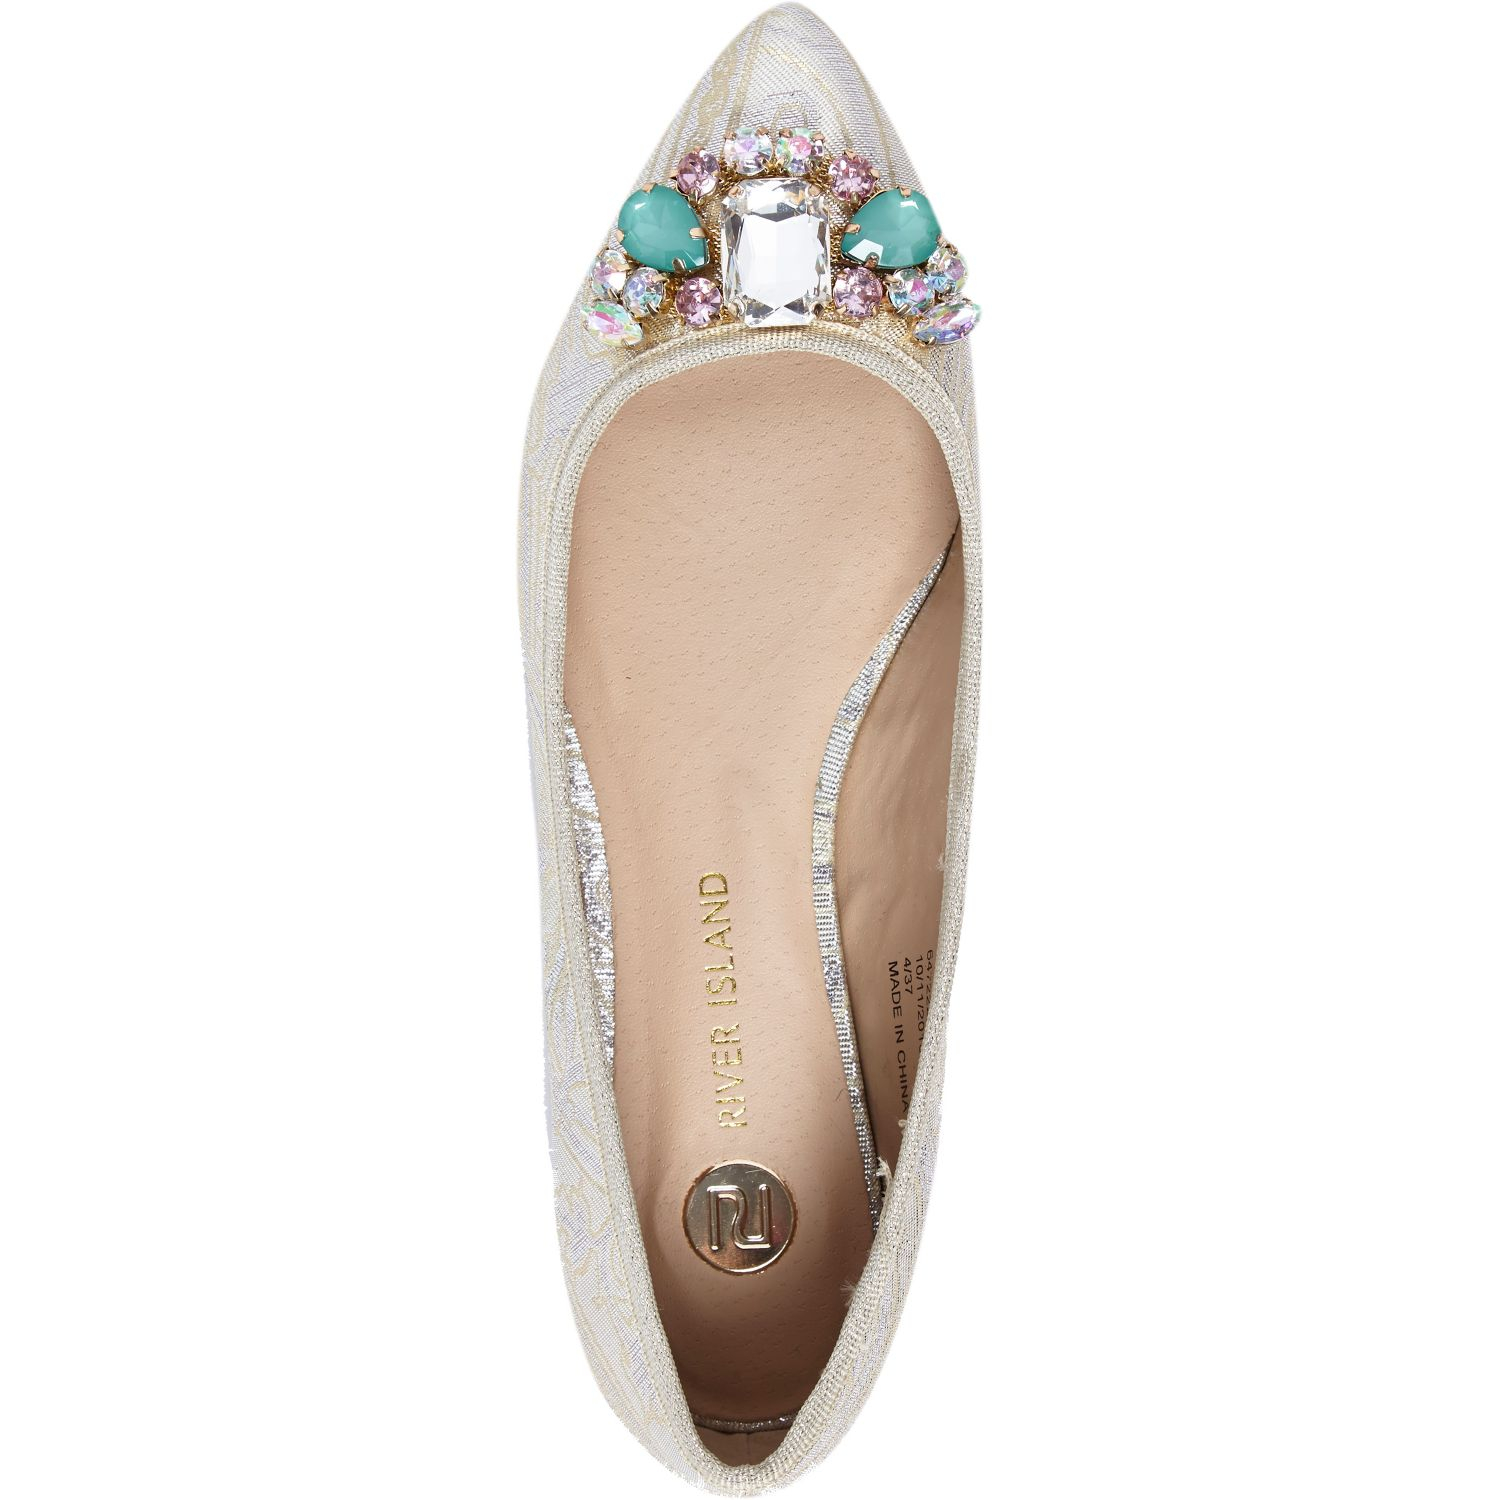 2d0c8561c72 River Island Gold Embellished Ballet Flats in Metallic - Lyst